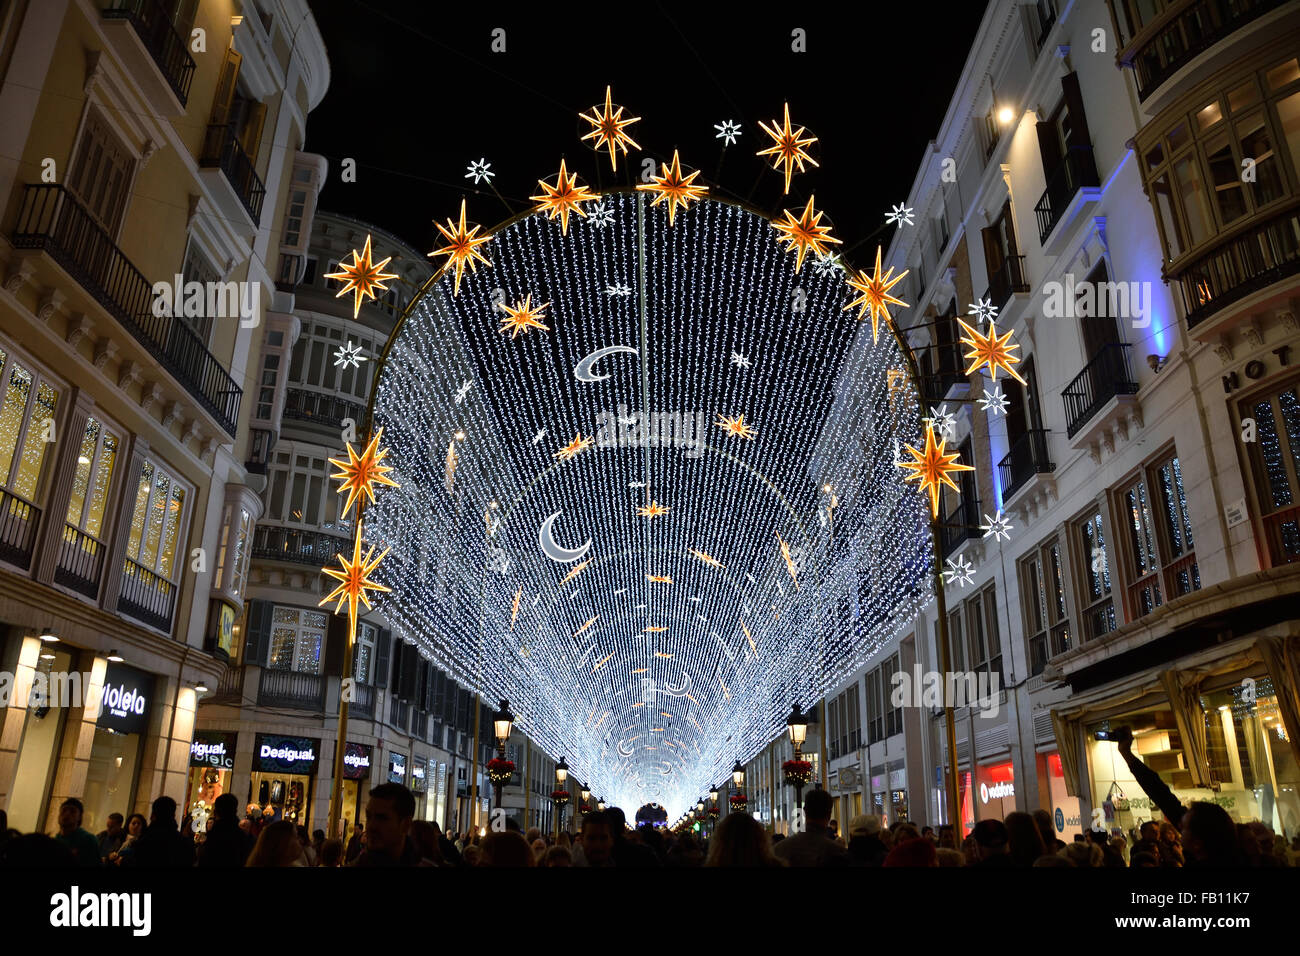 Malaga Christmas Lights Stockfotos & Malaga Christmas Lights Bilder ...